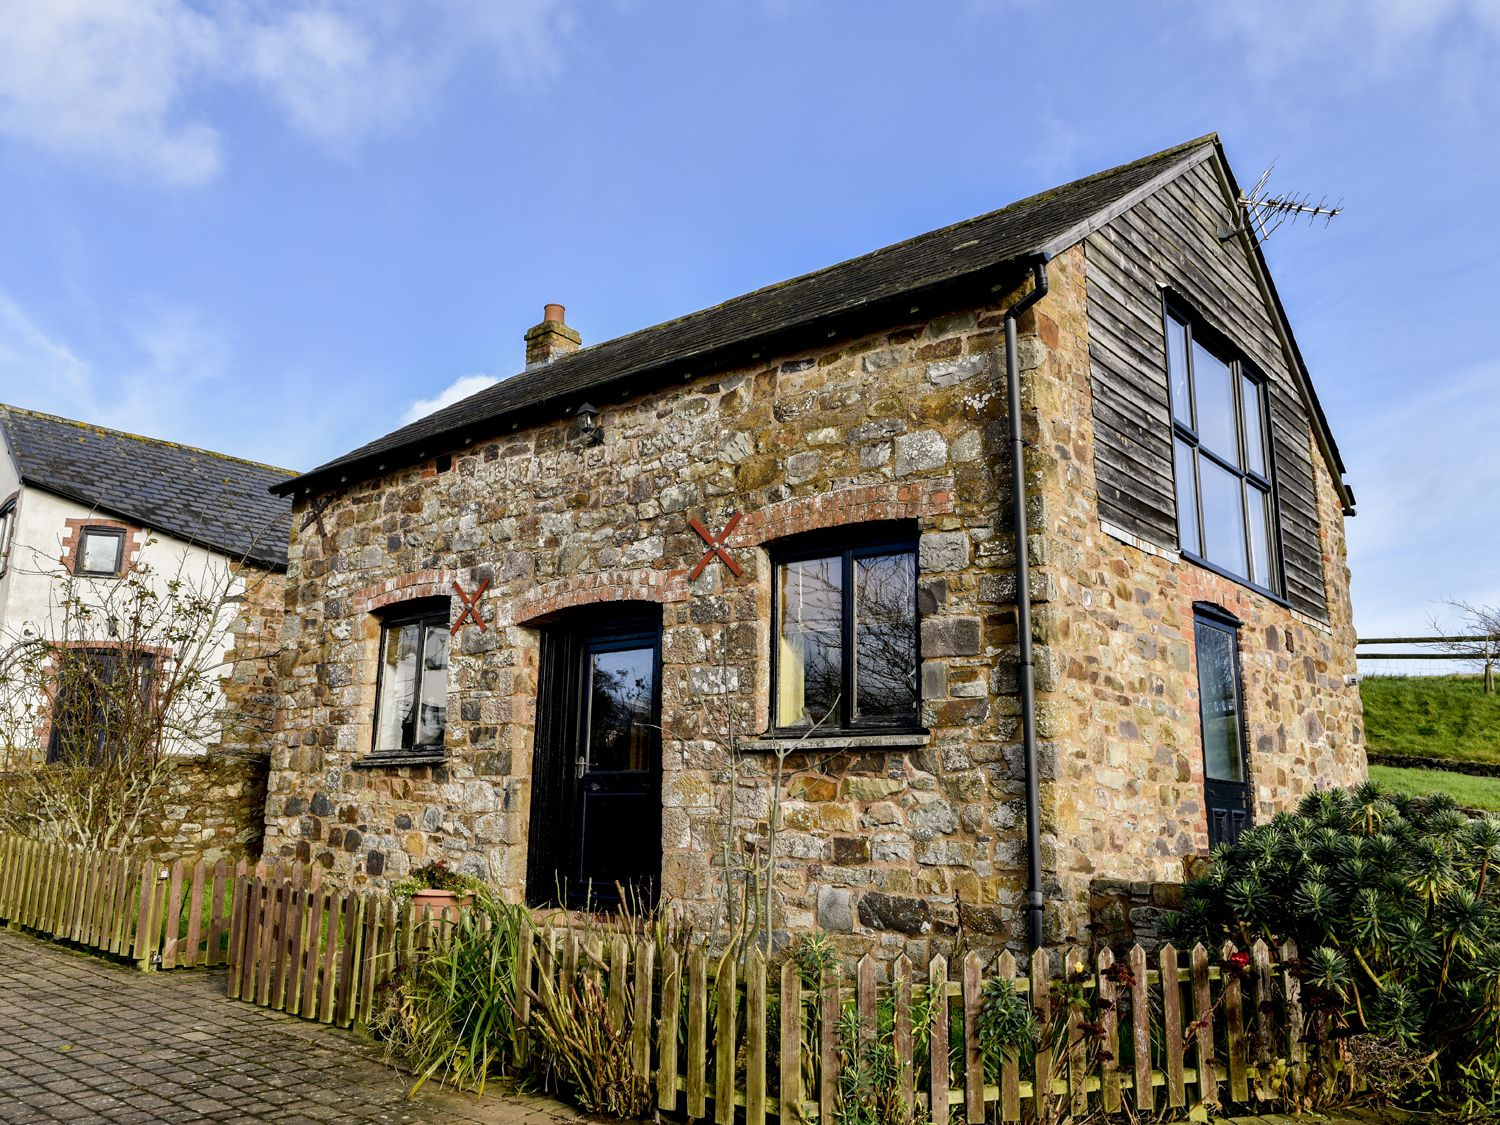 Holiday cottages in Devon: The Stable, North Tawton | sykescottages.co.uk